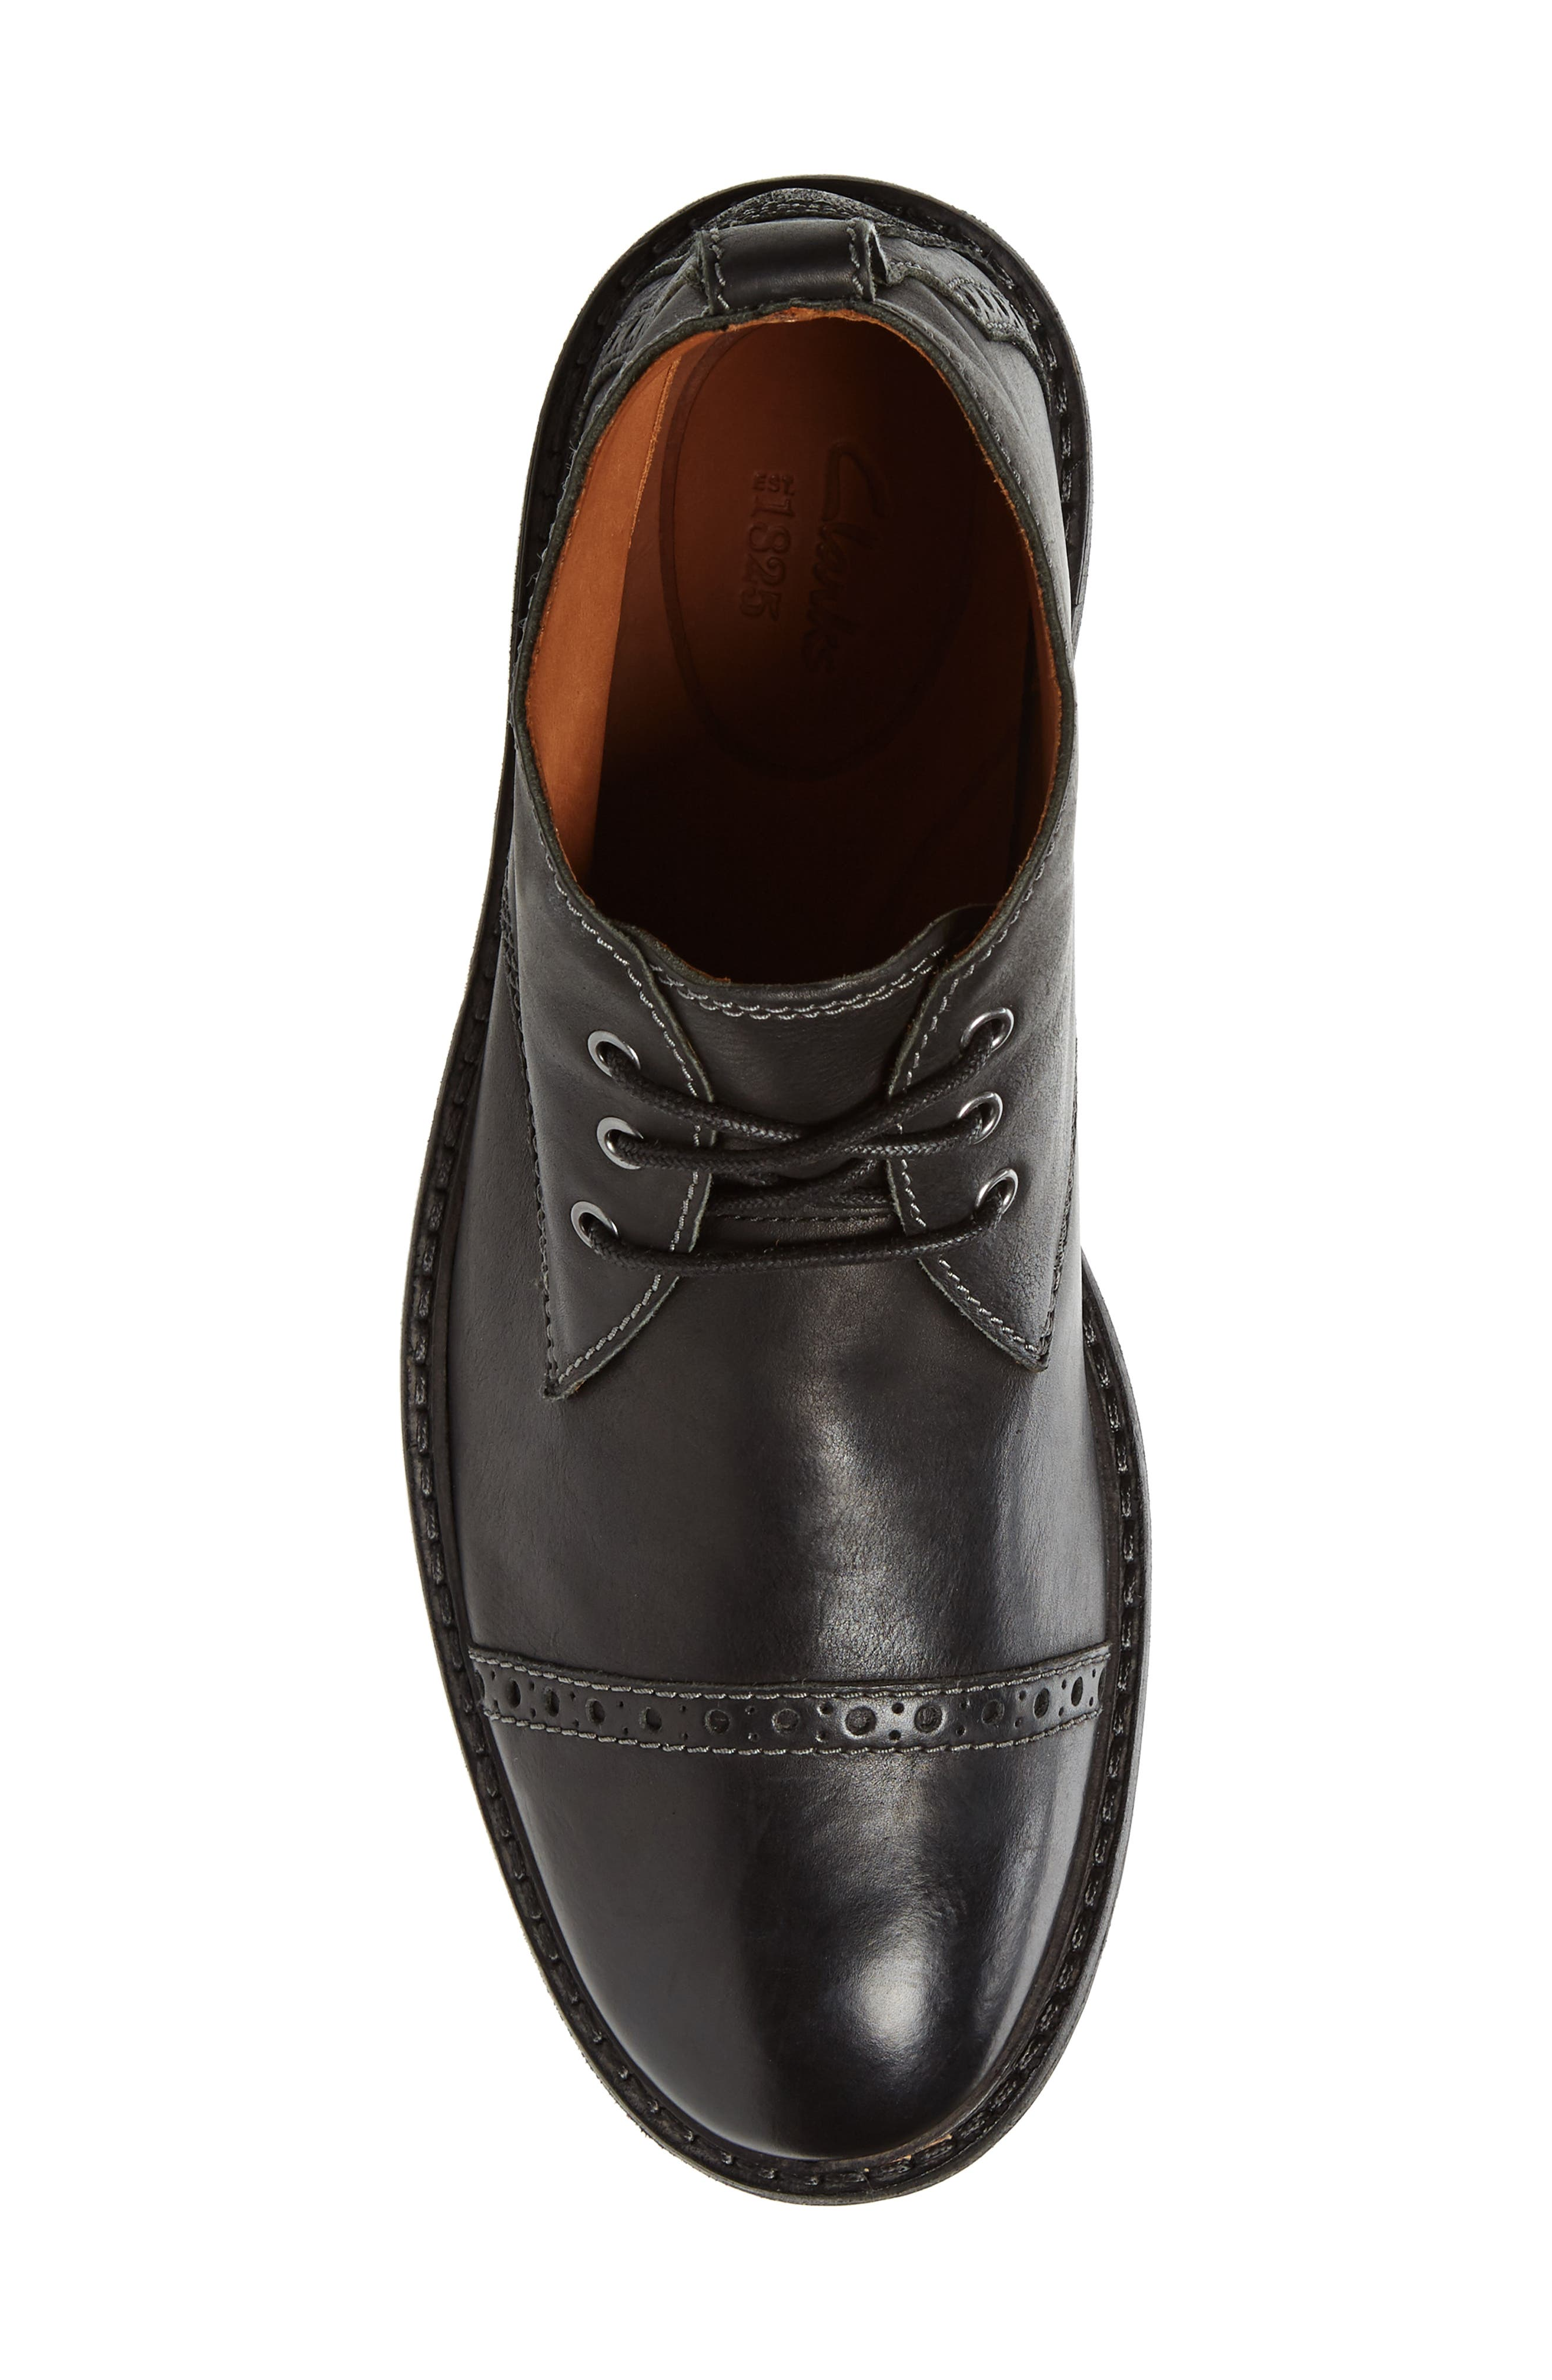 Clarkdale Water Resistant Chukka Boot,                             Alternate thumbnail 5, color,                             003